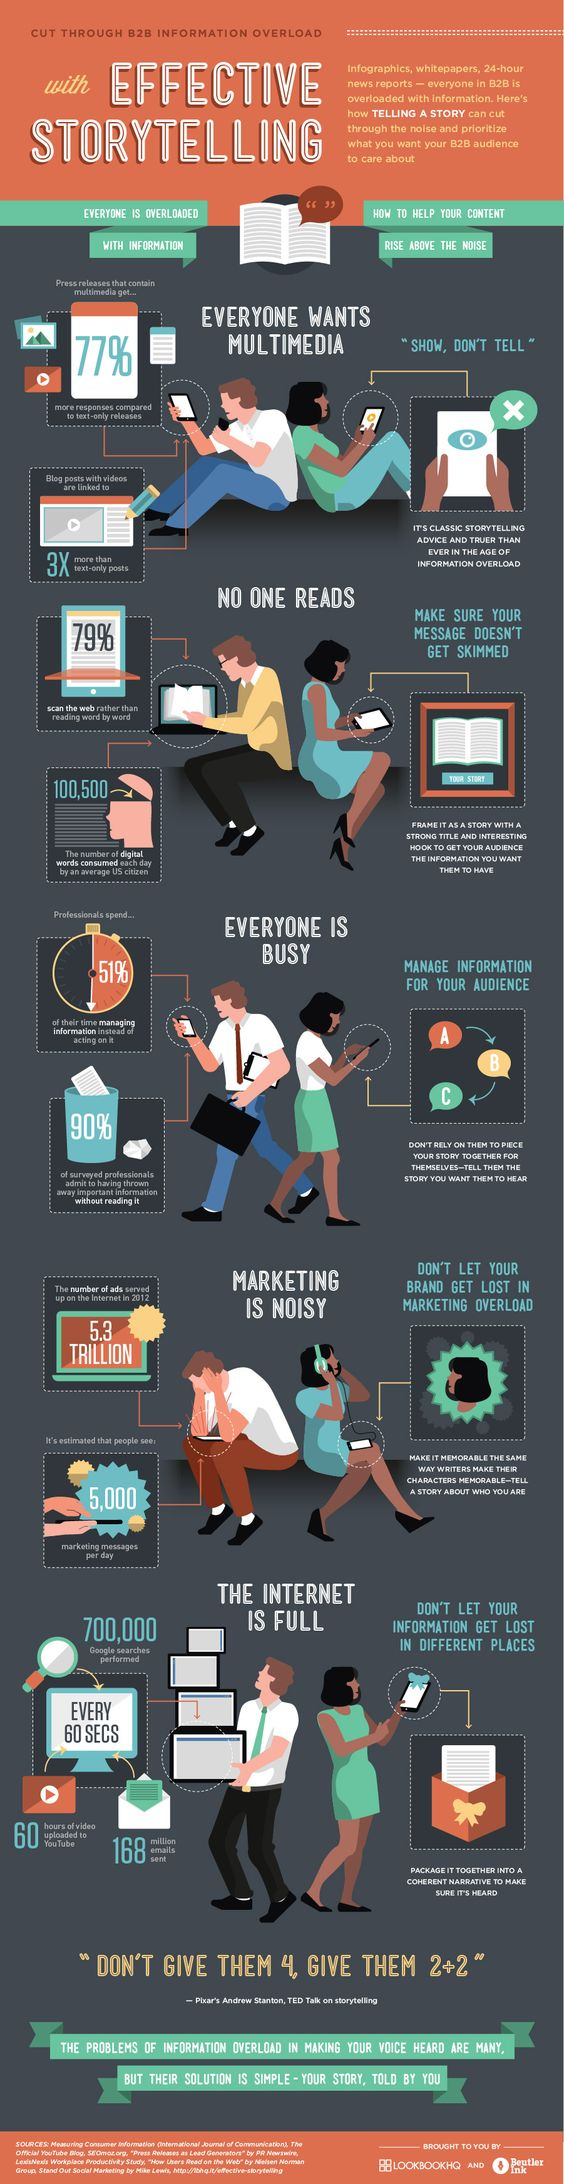 The Secret to Marketing to Busy People Who Don't Have Time to Read #infographic #storytelling #digitalstorytelling